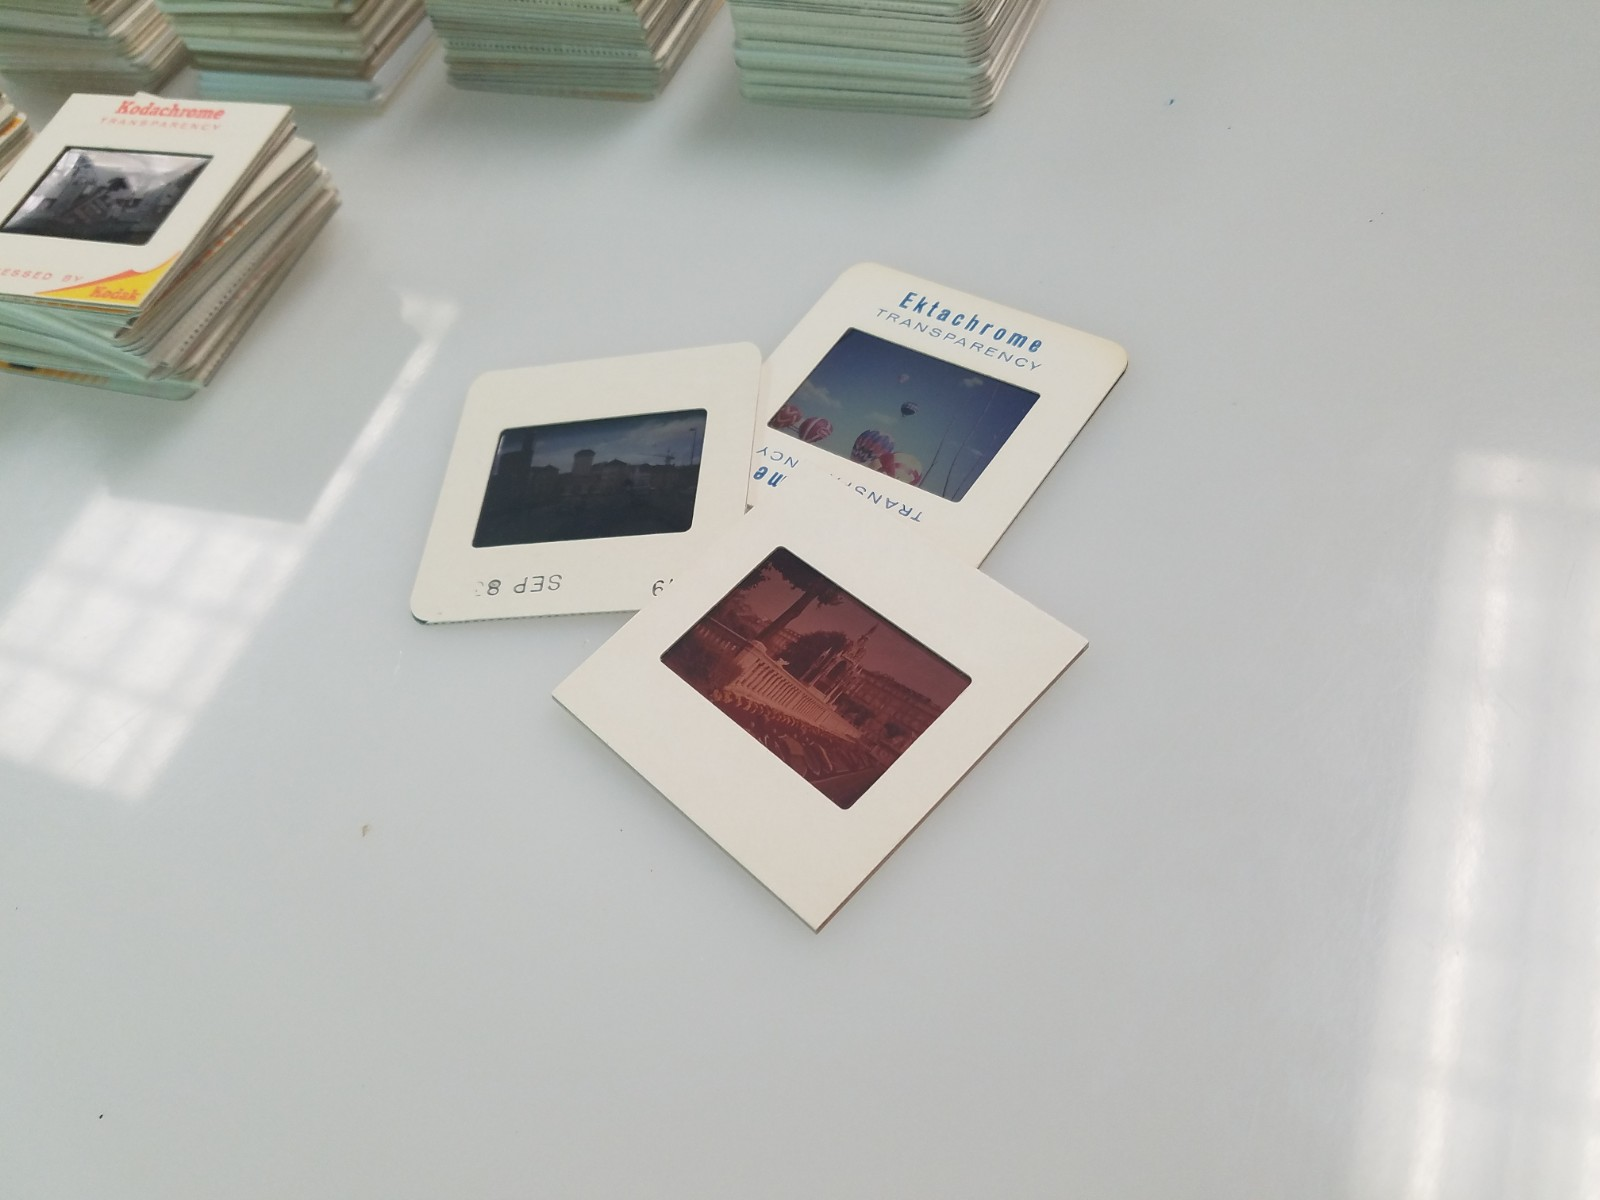 Three photography slides on a white table.